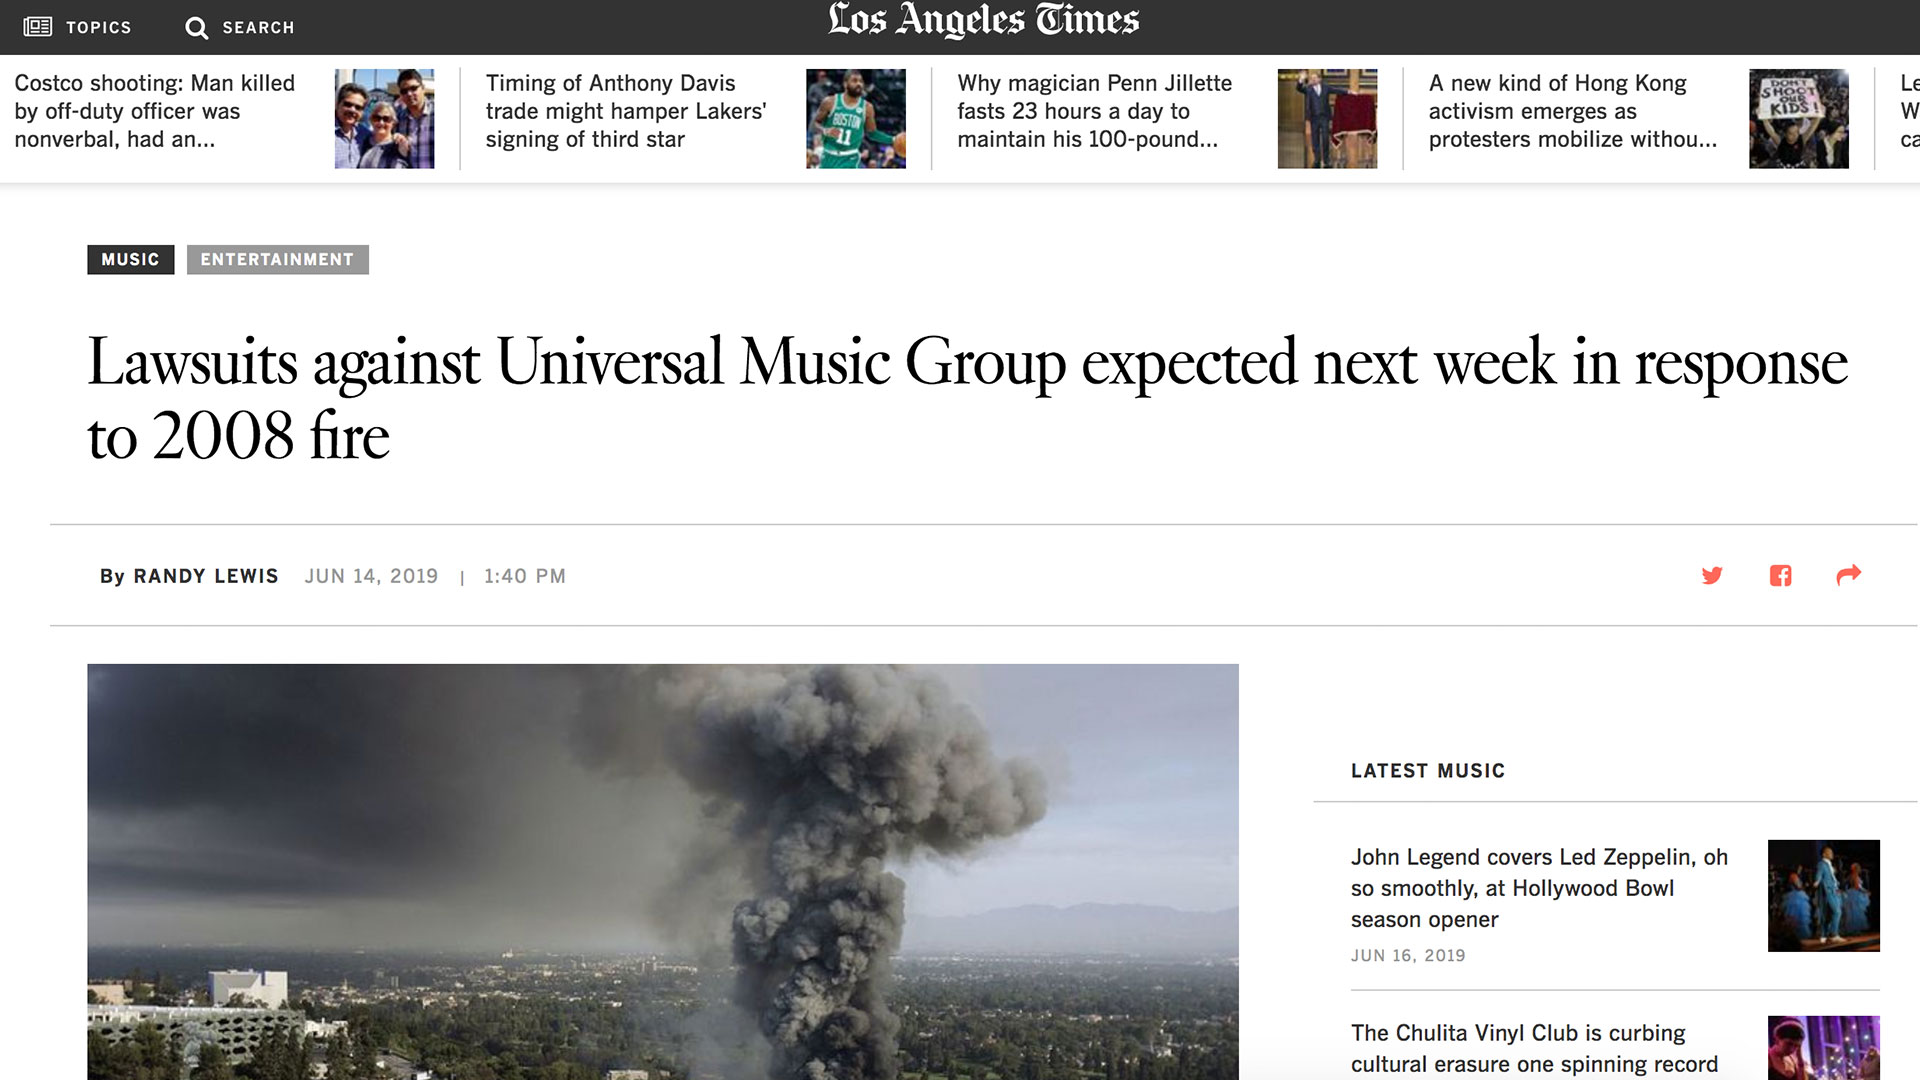 Fairness Rocks News Lawsuits against Universal Music Group expected next week in response to 2008 fire